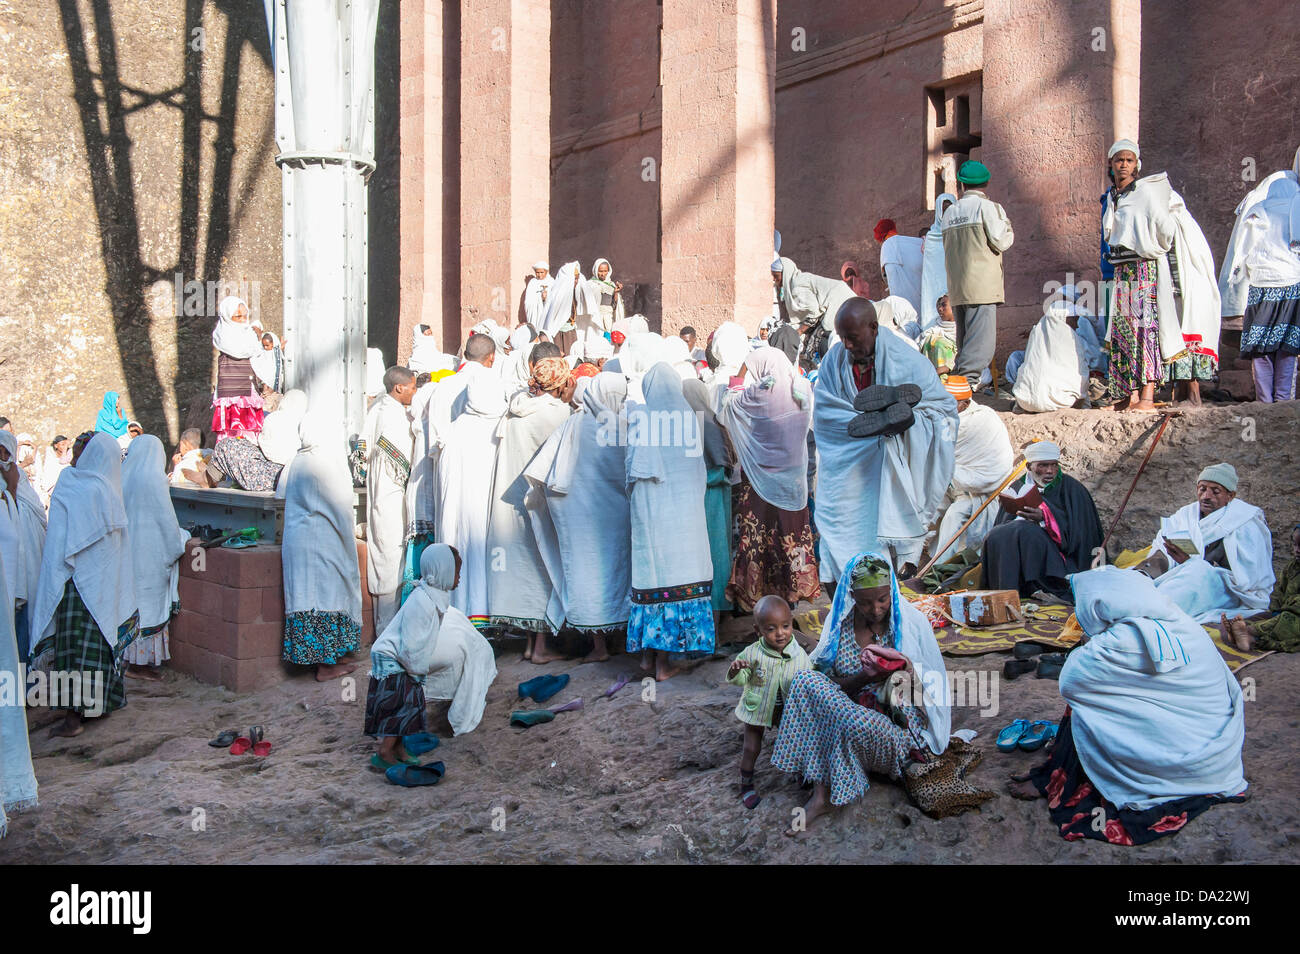 Pilgrims with the traditional white shawl attending a ceremony at the Bete Medhane Alem Church, Lalibela, Ethiopia - Stock Image